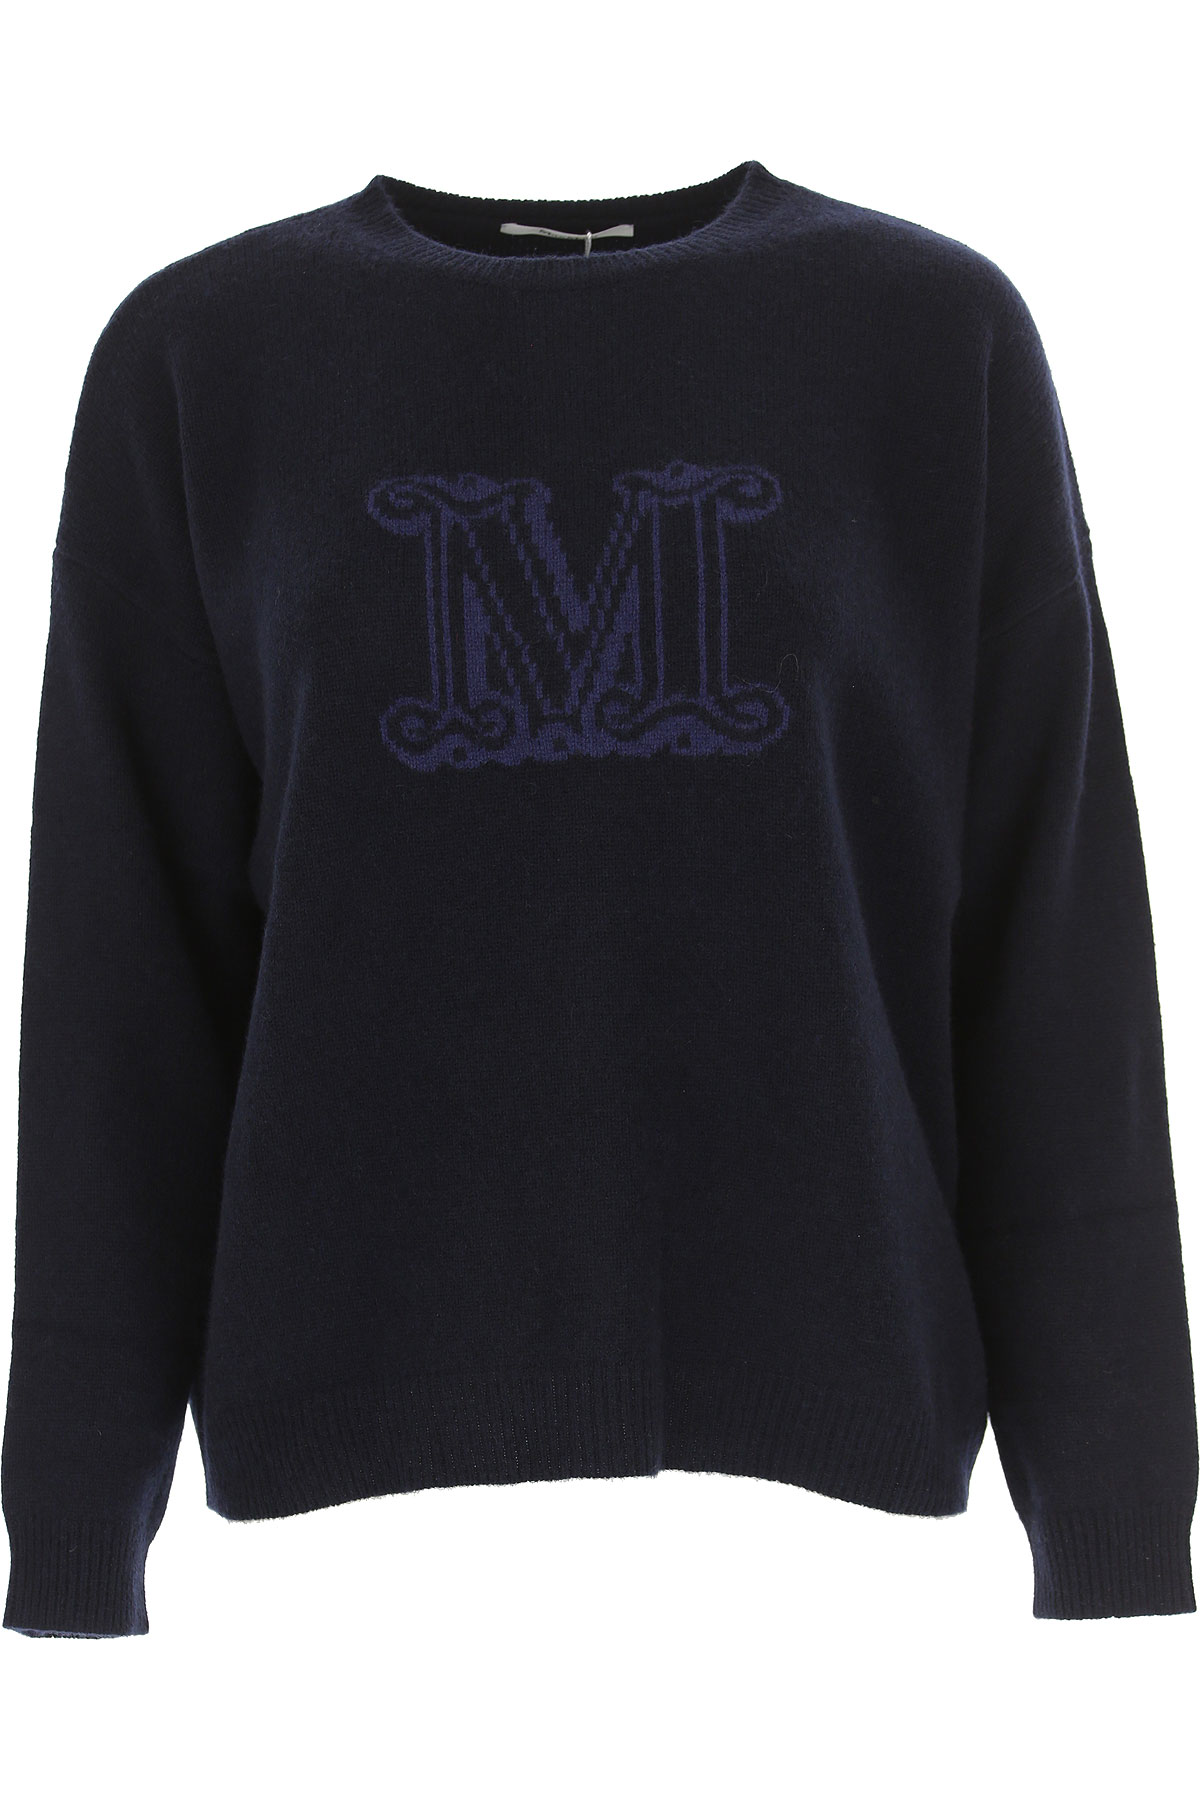 Image of Weekend by Max Mara Sweater for Women Jumper, Navy Blue, Cashemere, 2017, 2 4 6